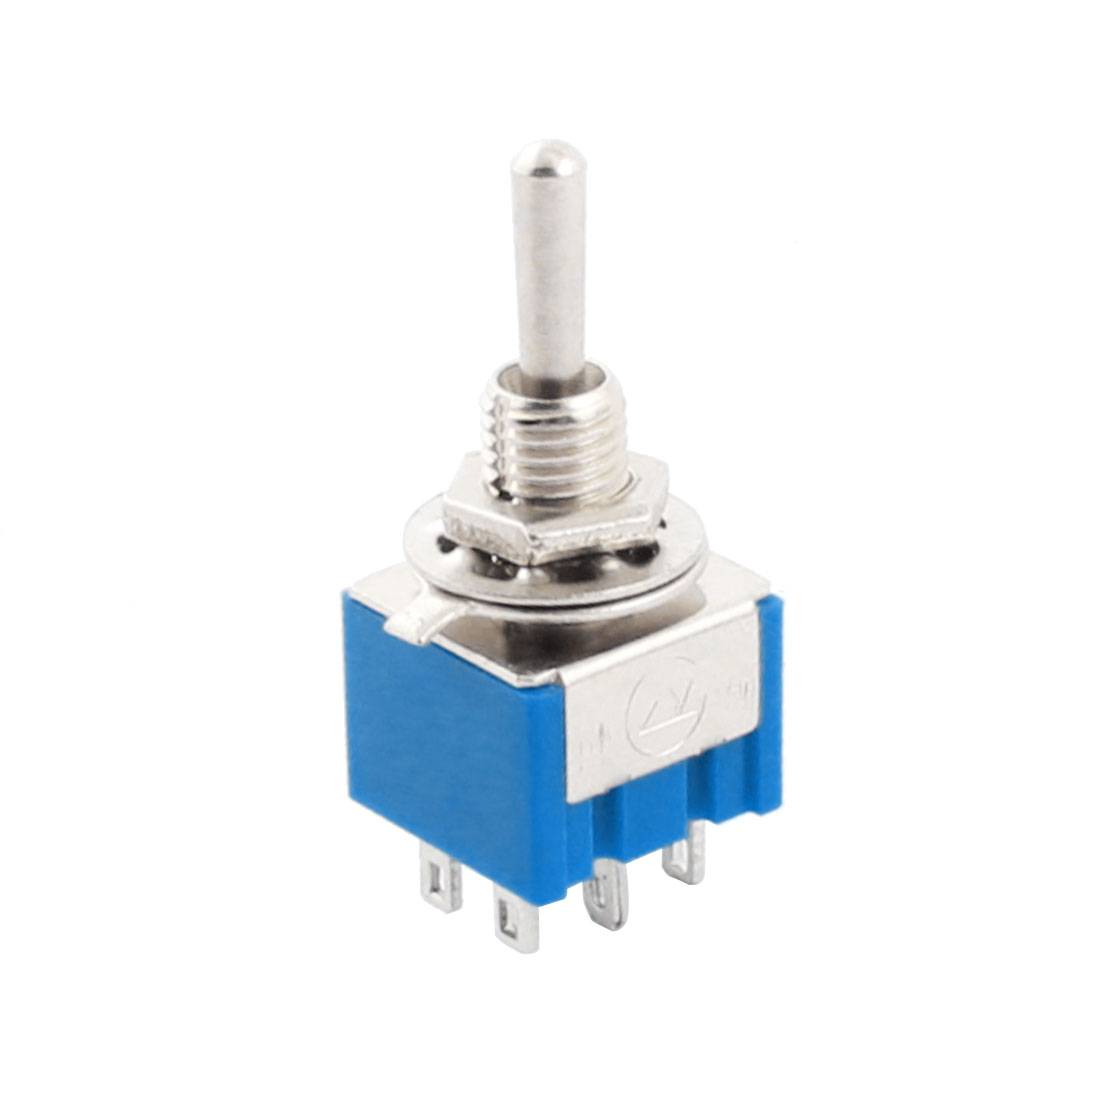 AC 125V 6A DPDT On/OFF/ON 3 Positions 6 Pin Latching Toggle Switch